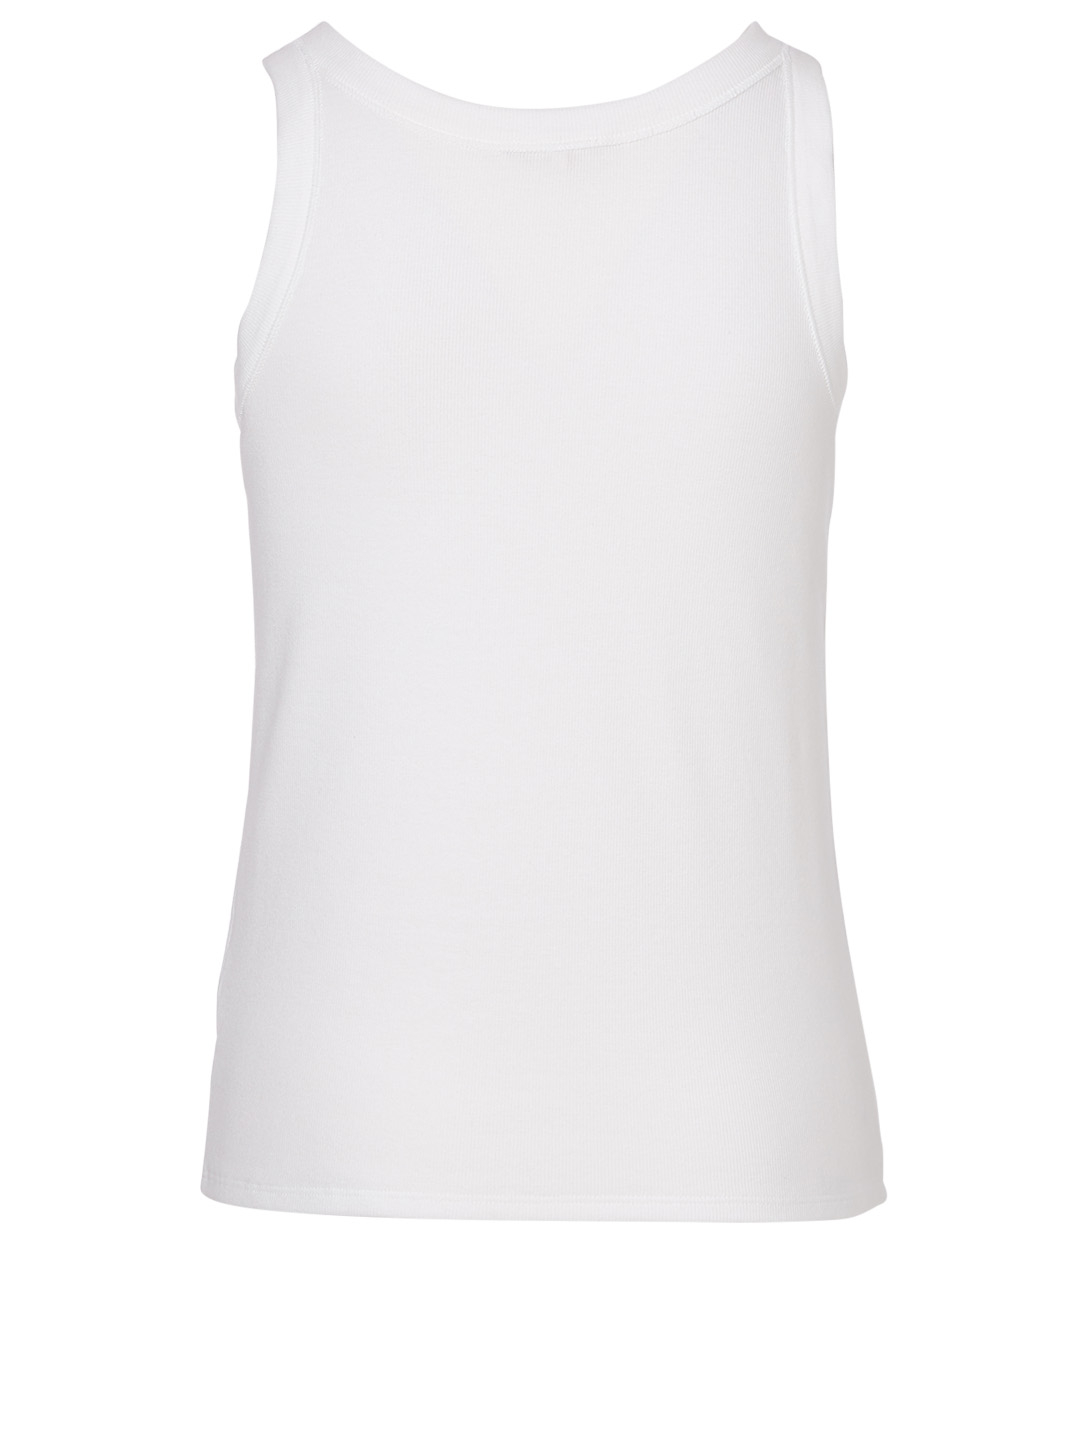 THE ROW Firala Cotton Tank Top Women's White